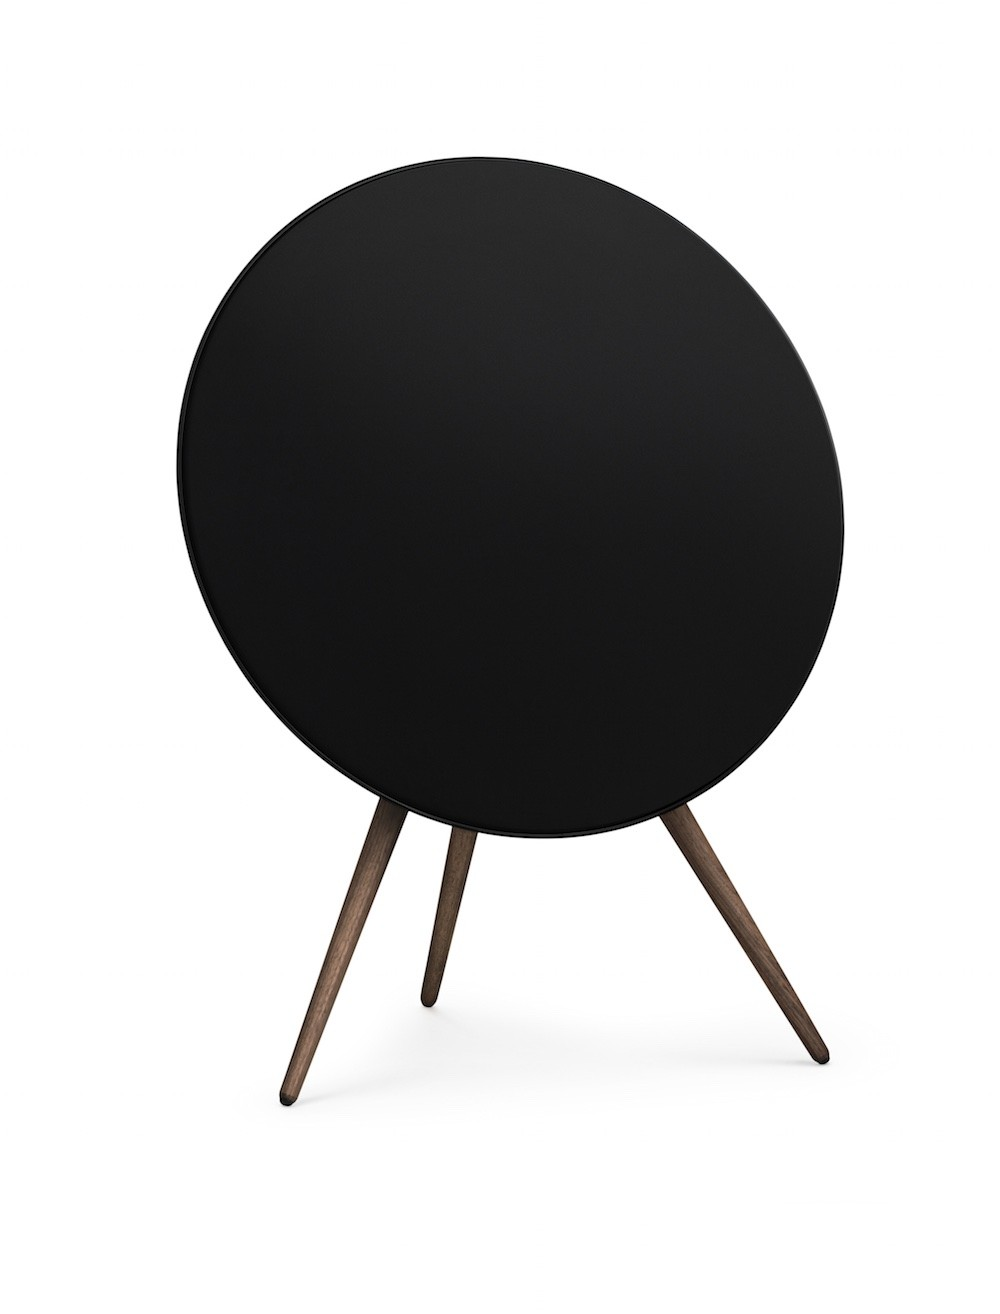 B&O BeoPlay A9 Black with walnut legs